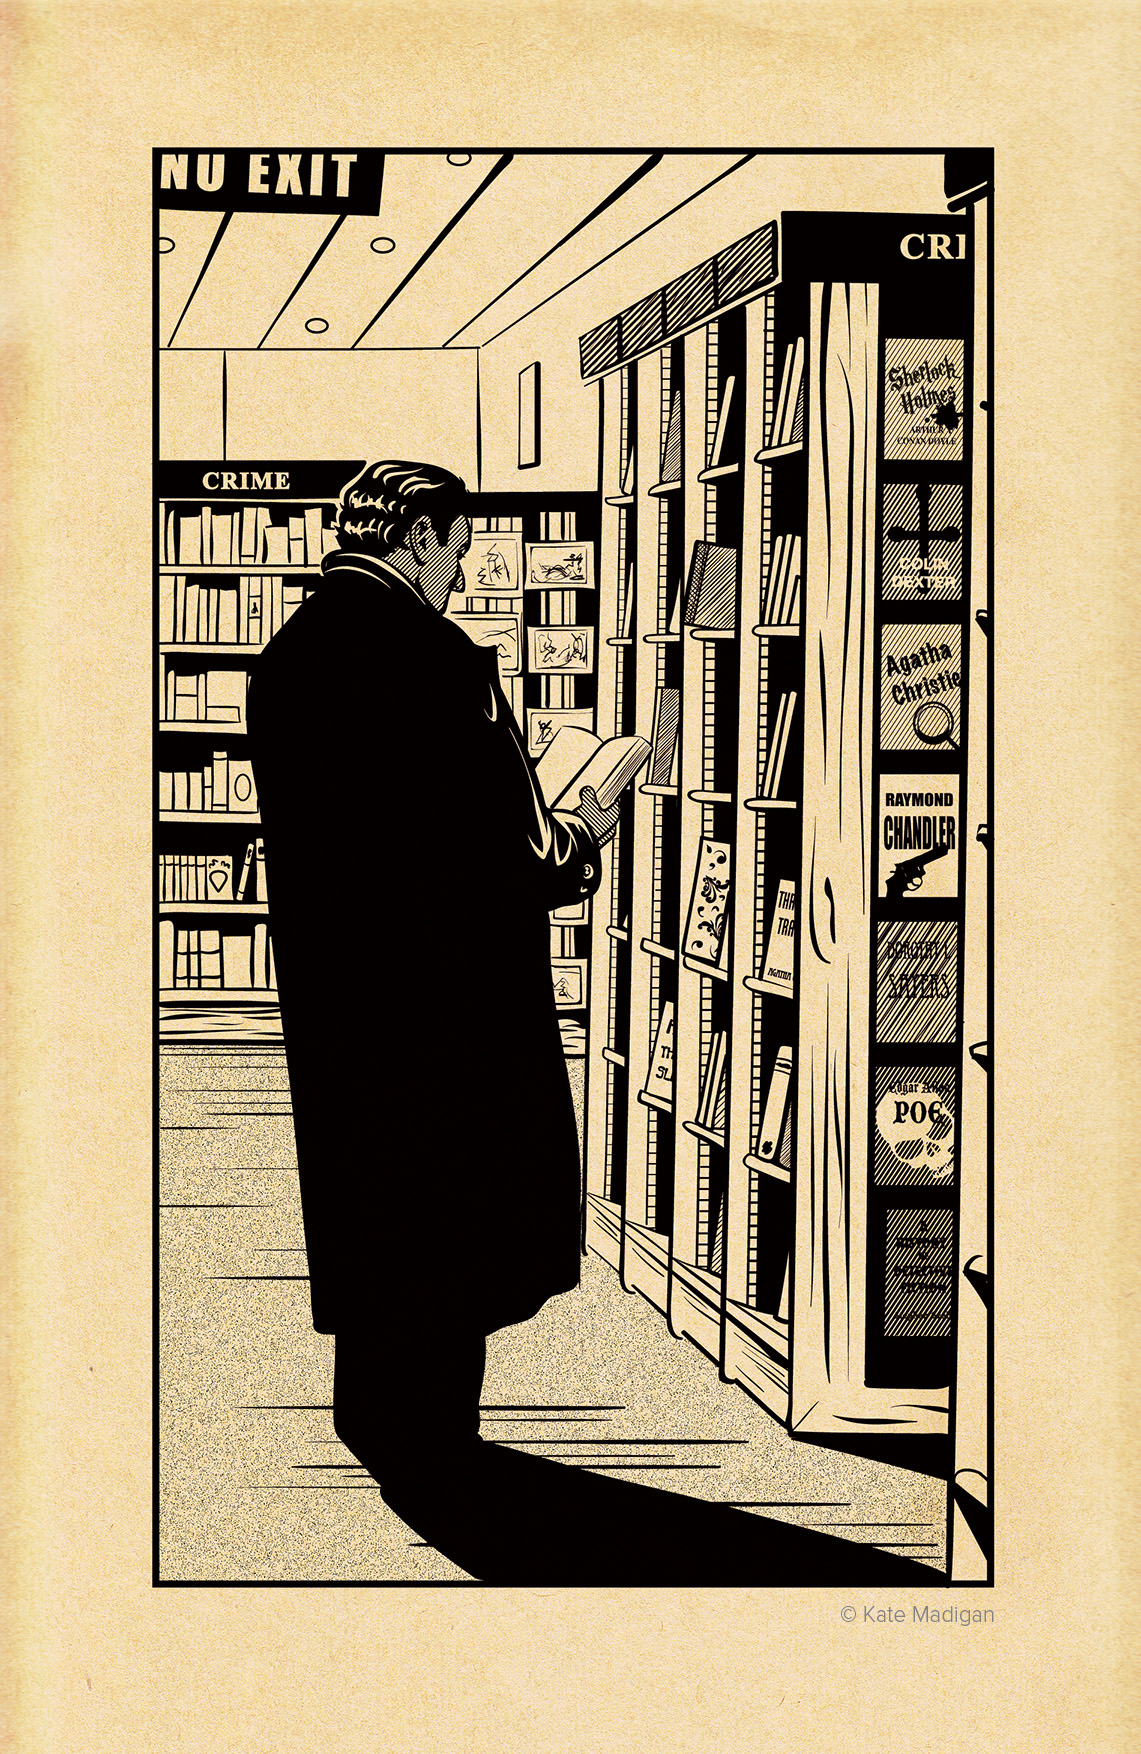 Drawing of a tough-looking, dark-haired man in an overcoat, collar turned up, lurking in the crime section of Blackwell's Bookshop, Oxford  . Classic works of detective fiction are displayed on the shelves.Created as part of my solo exhibition at Blackwell's Bookshop.Line drawing on toned, distressed paper.Copyright Kate Madigan.